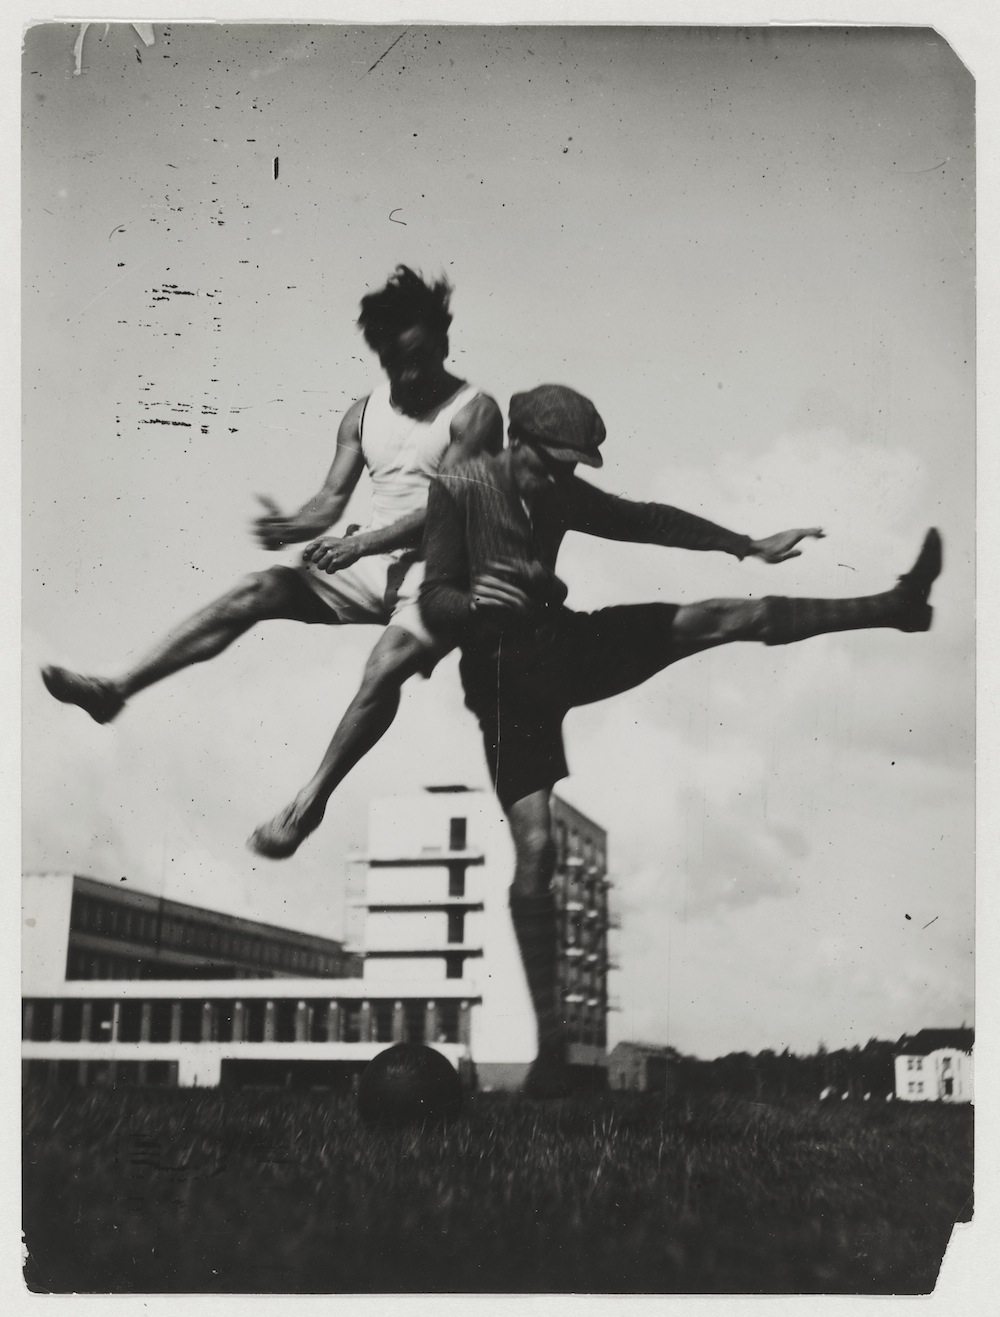 Sport at the Bauhaus (The jump over the Bauhaus), c.1927, Bauhaus-Archiv Berlin / © T.Lux Feininger